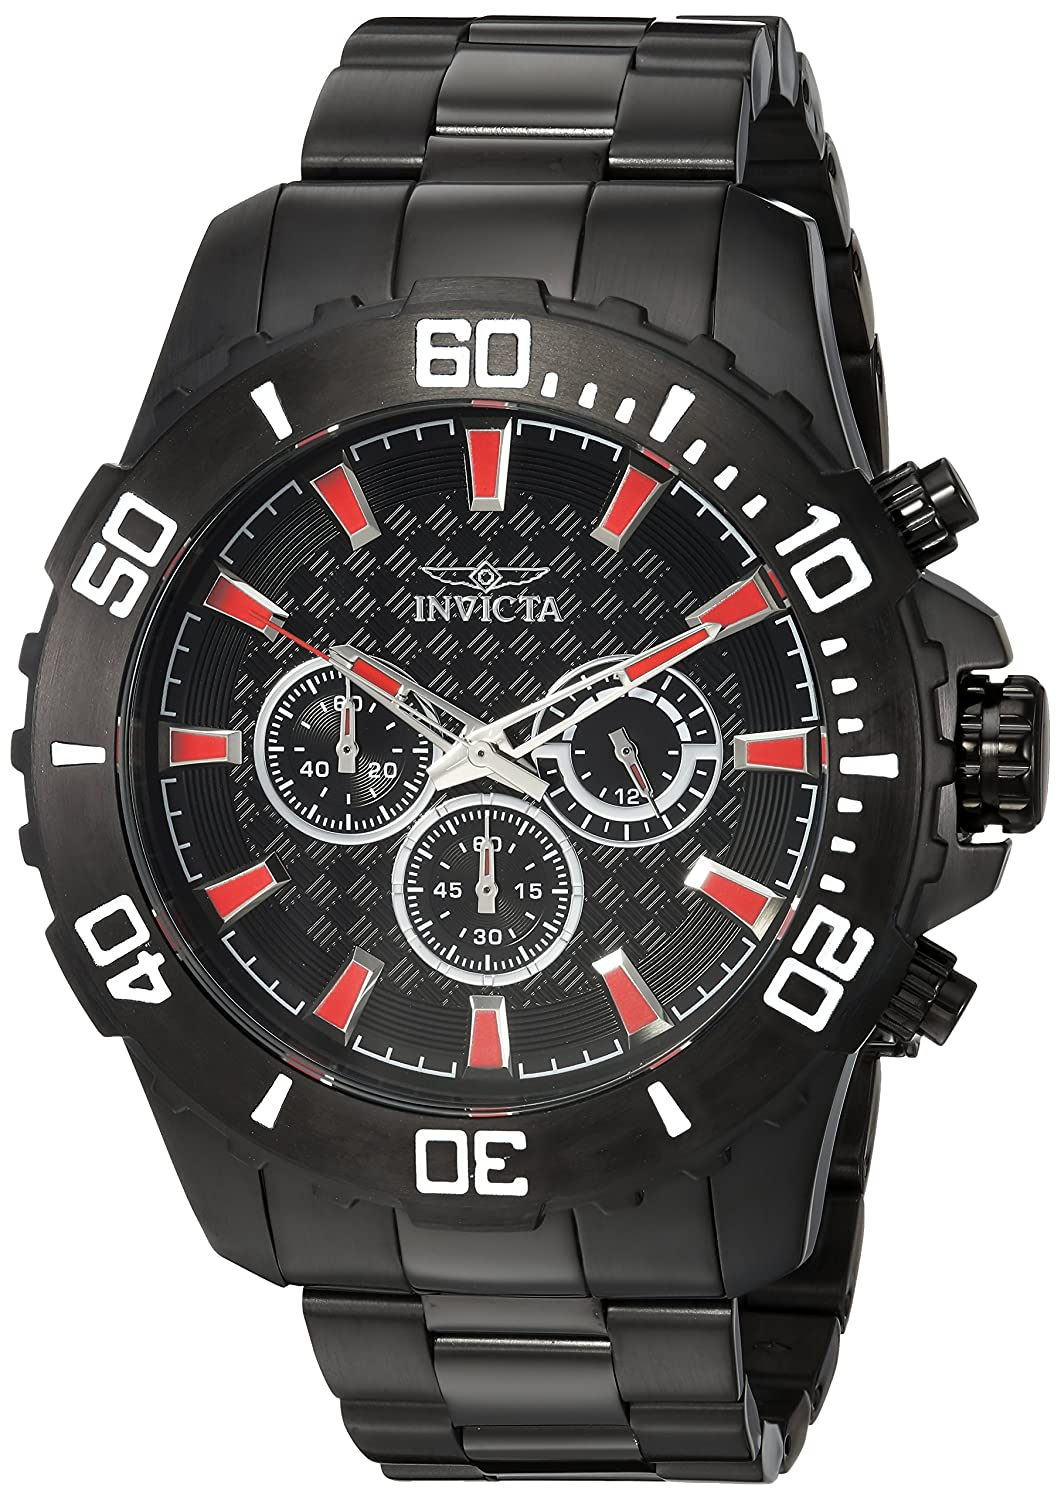 Invicta Men s Pro Diver Analog-Quartz Watch with Two-Tone-Stainless-Steel Strap, Black, 10 Model 22549